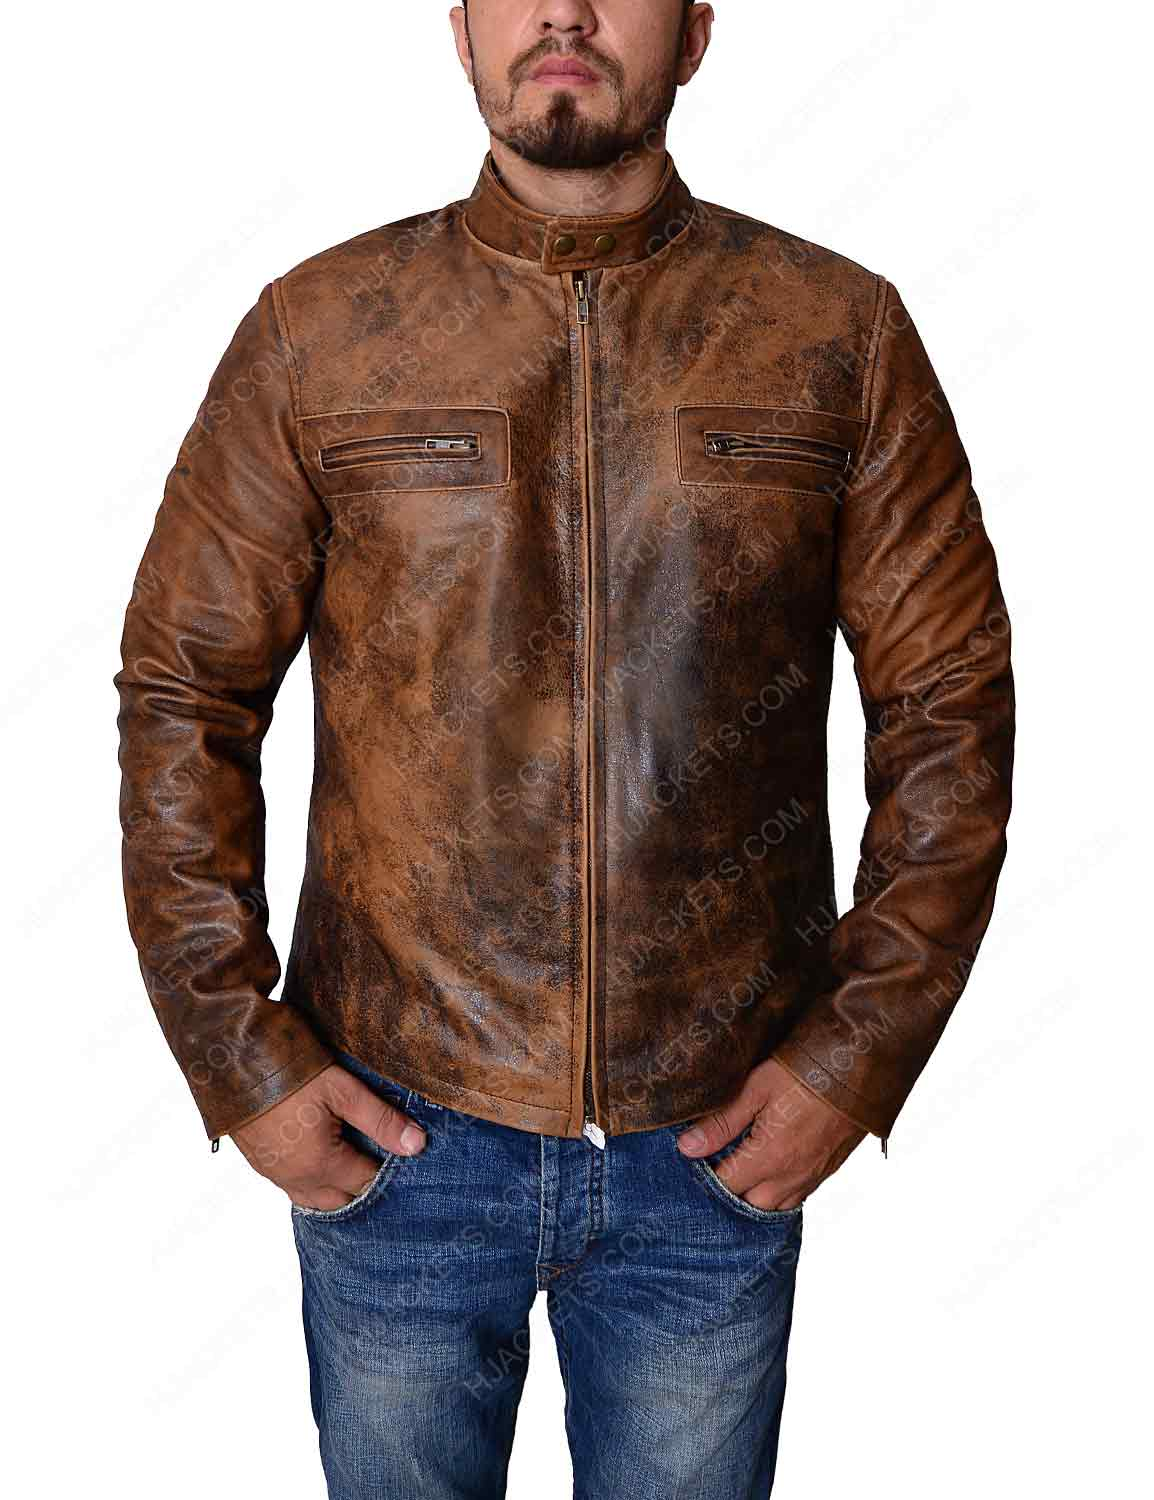 Oct 14,  · Buy a casual biker jacket if you're tall. Motorcycle or biker jackets typically contain several visual effects such as zippers and pockets that can overwhelm the frame of men typically considered to be short%(8).